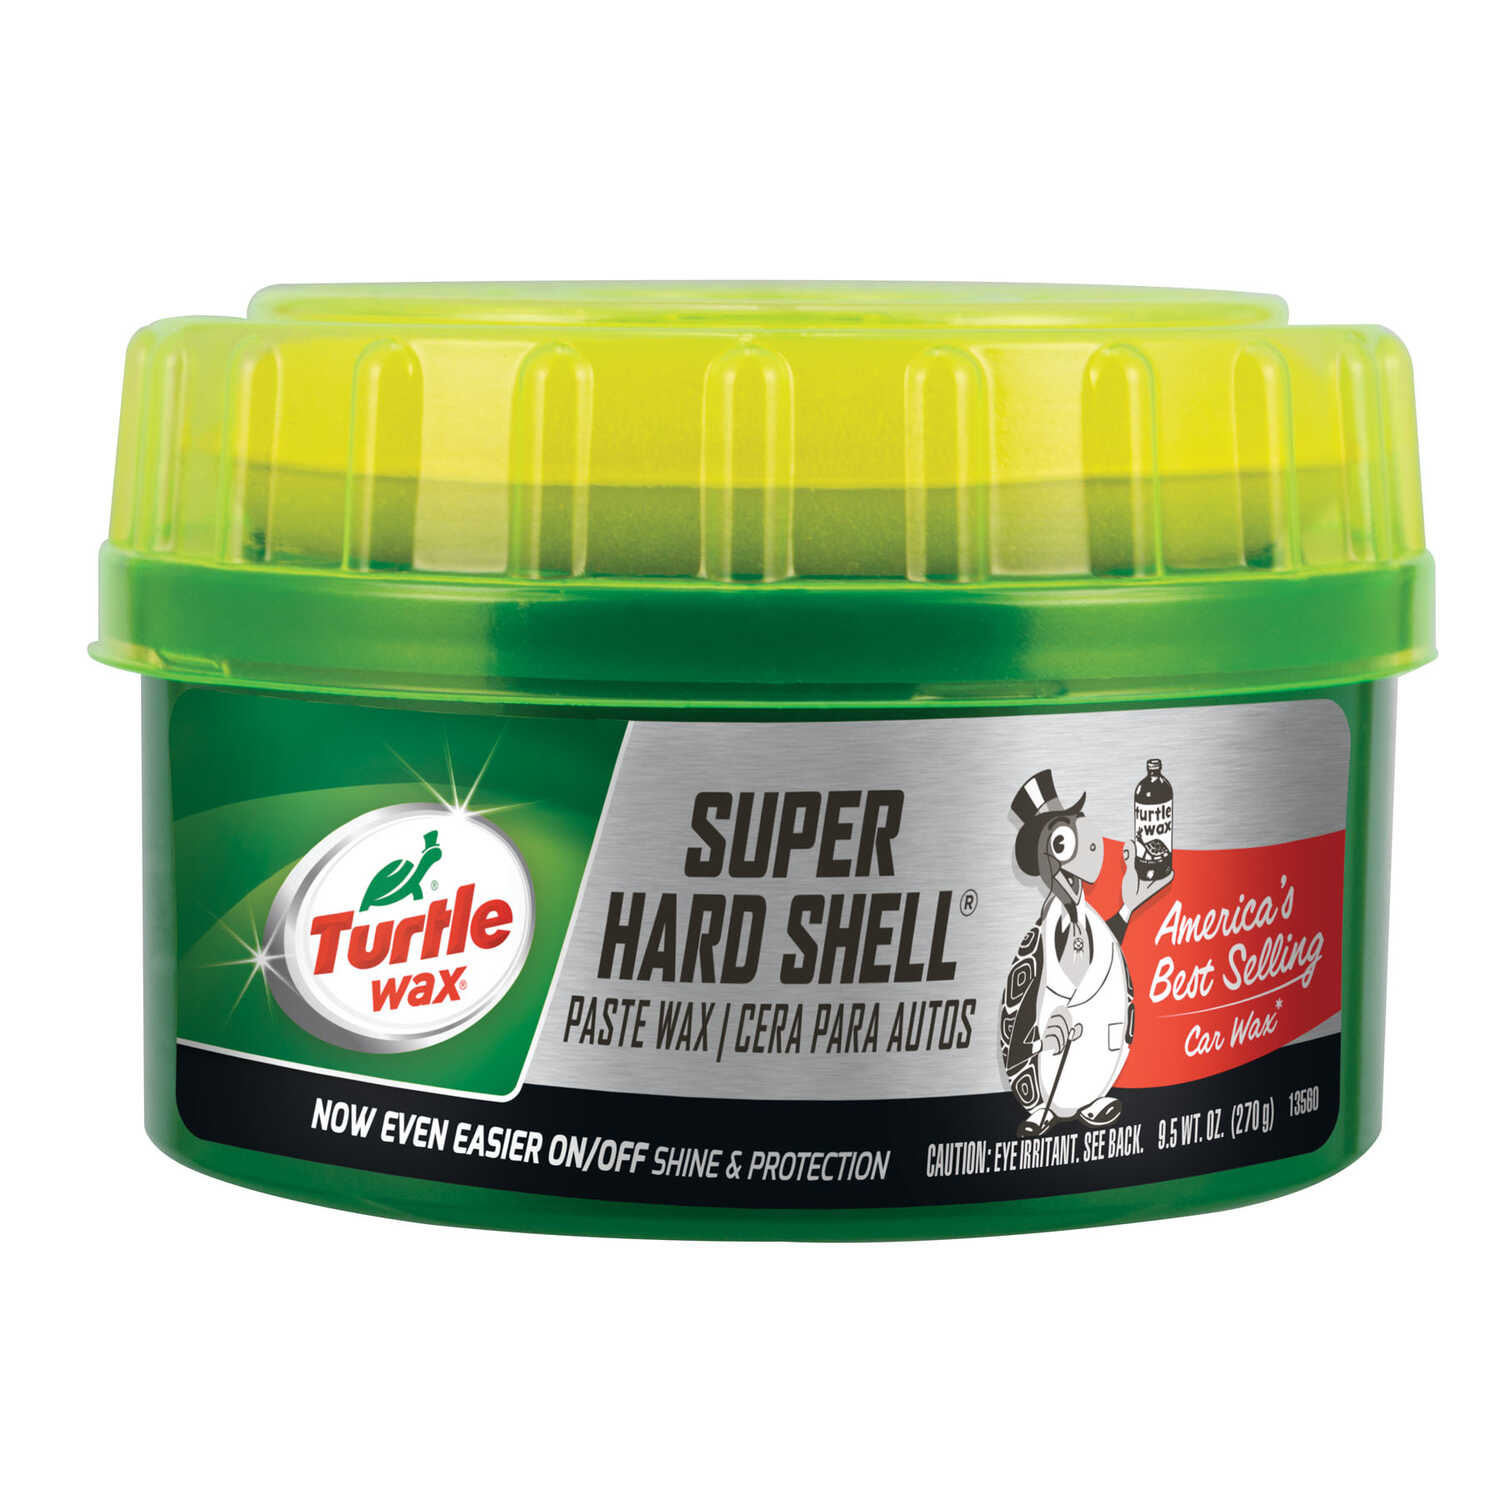 Turtle Wax  Super Hard Shell  Wax  Automobile Wax  9.5 oz. For All Finishes